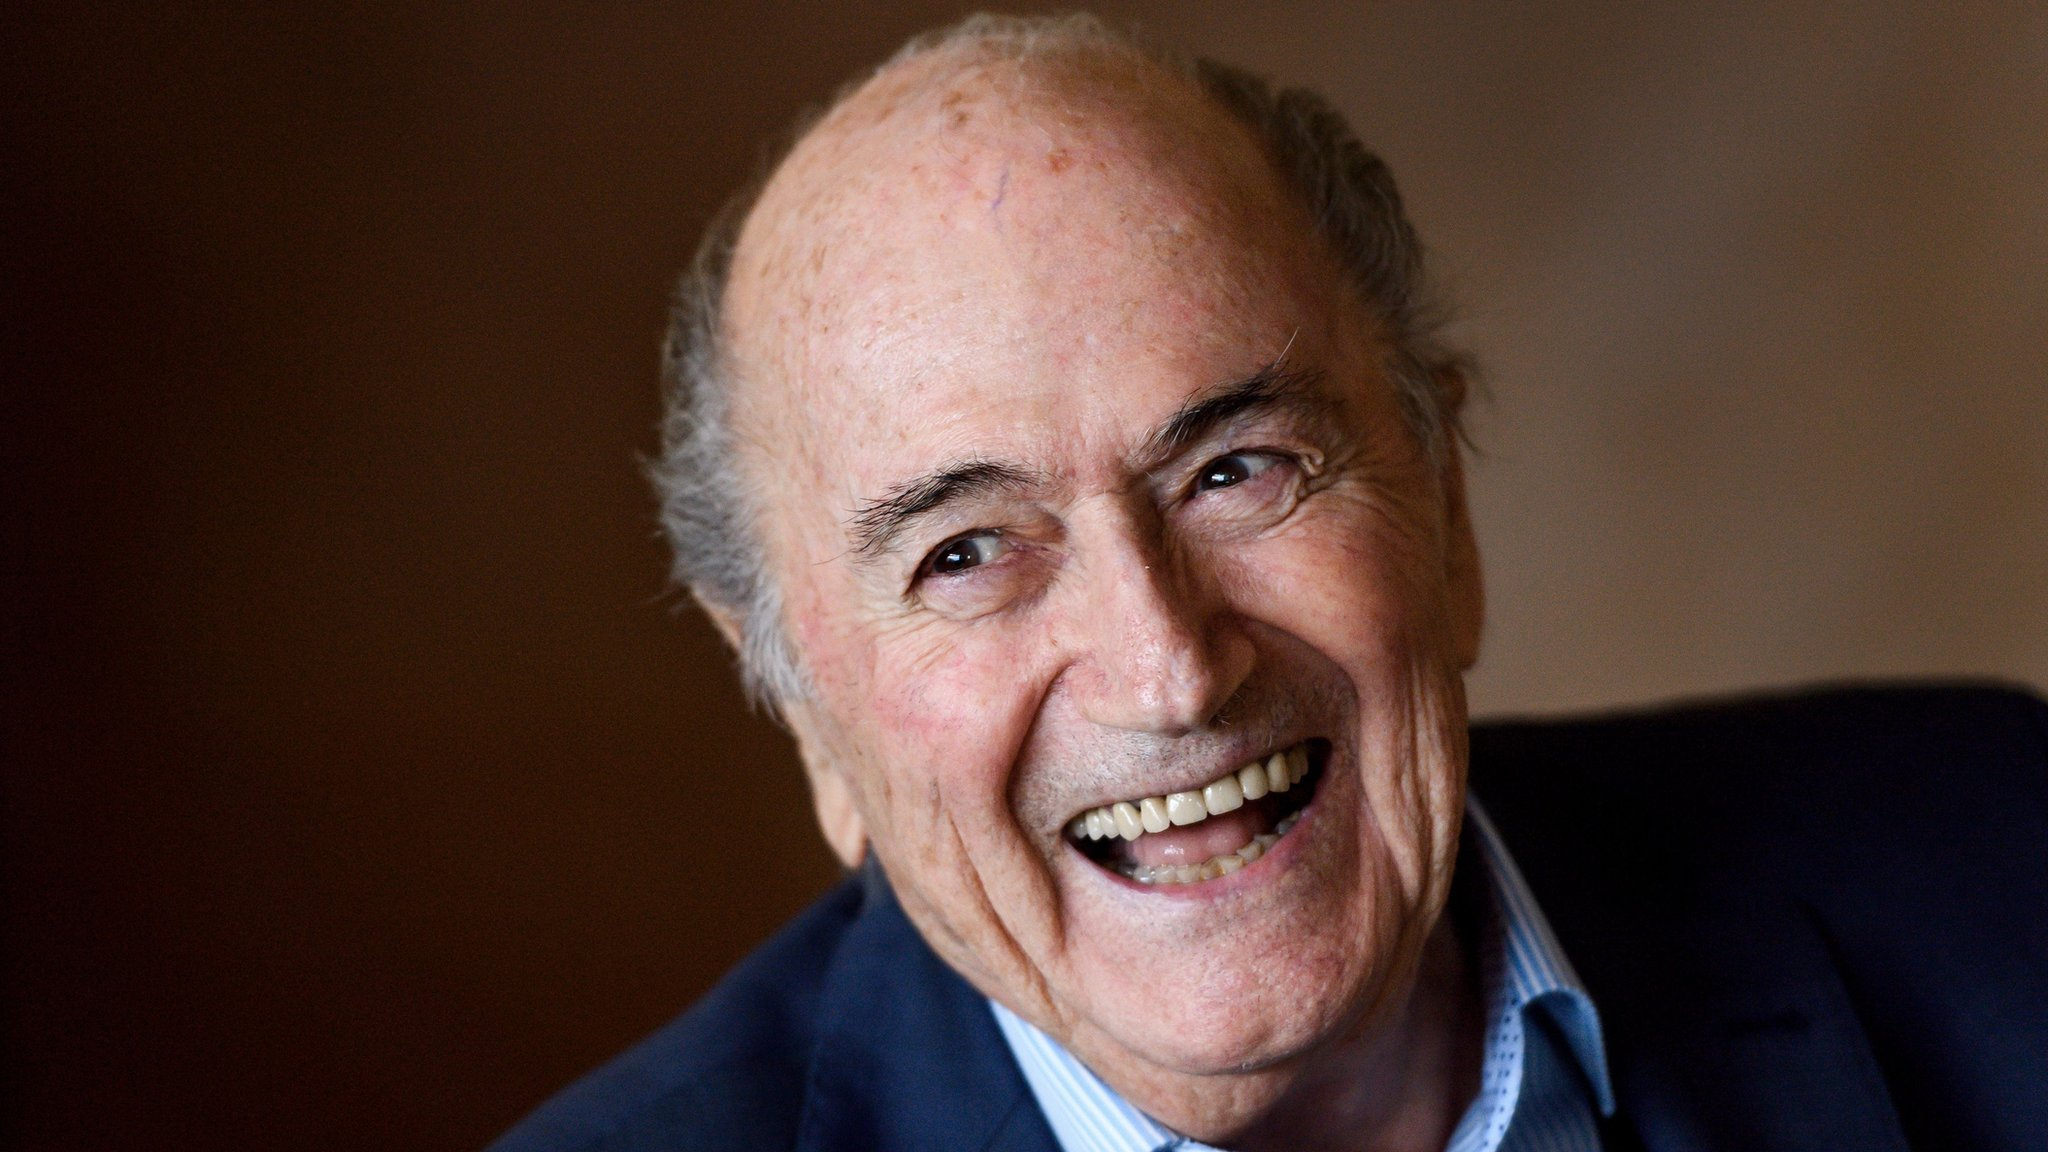 World Cup 2018: Fifa 'takes note' of Sepp Blatter's attendance